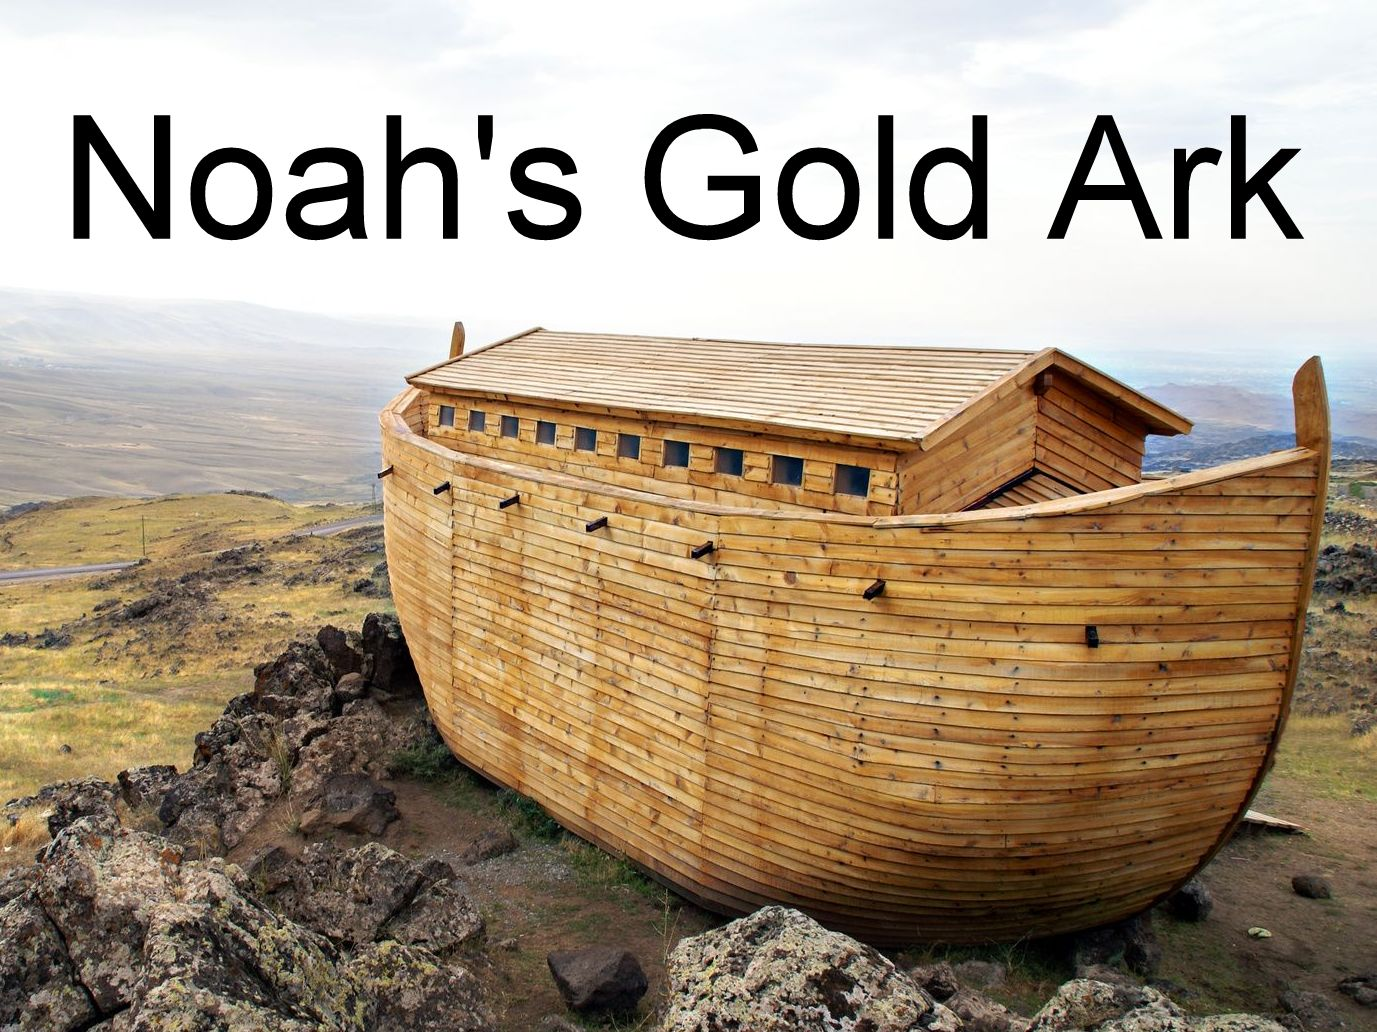 Why Noah's Gold Ark? Noah saved man and animal-kind from the flood ...